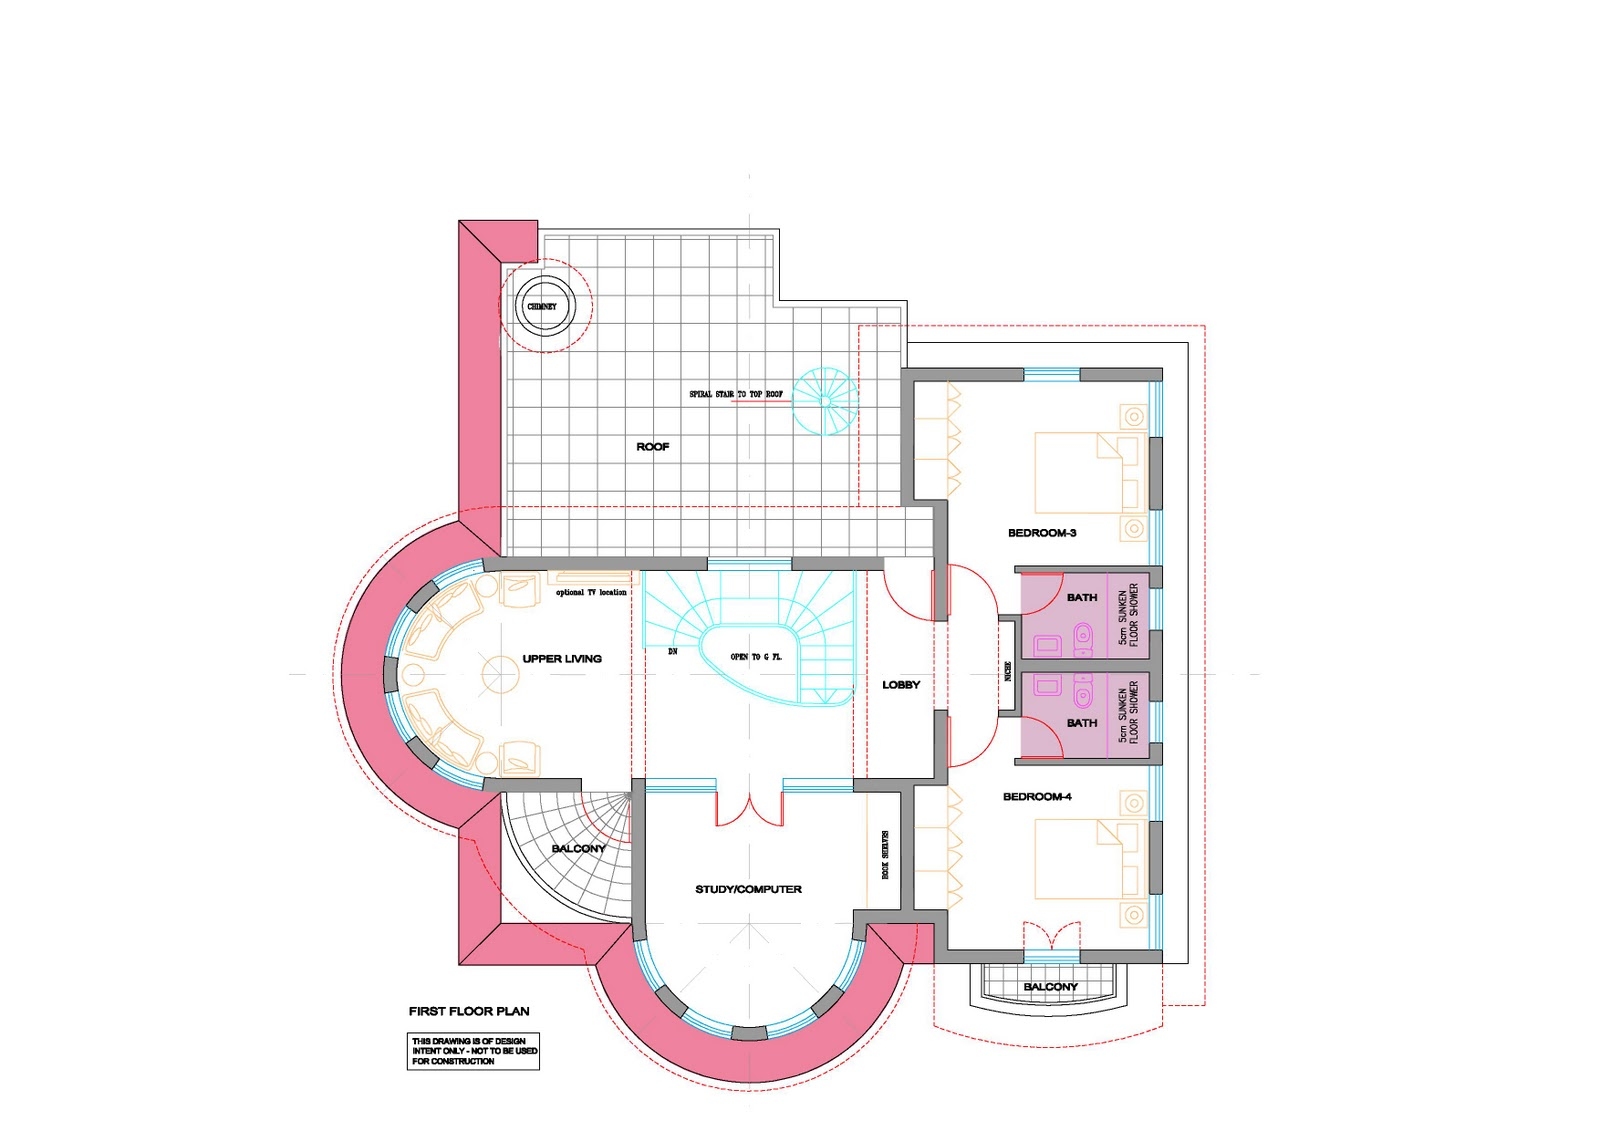 House Open Floor Plans Round Homes - Donkiz Real Estate